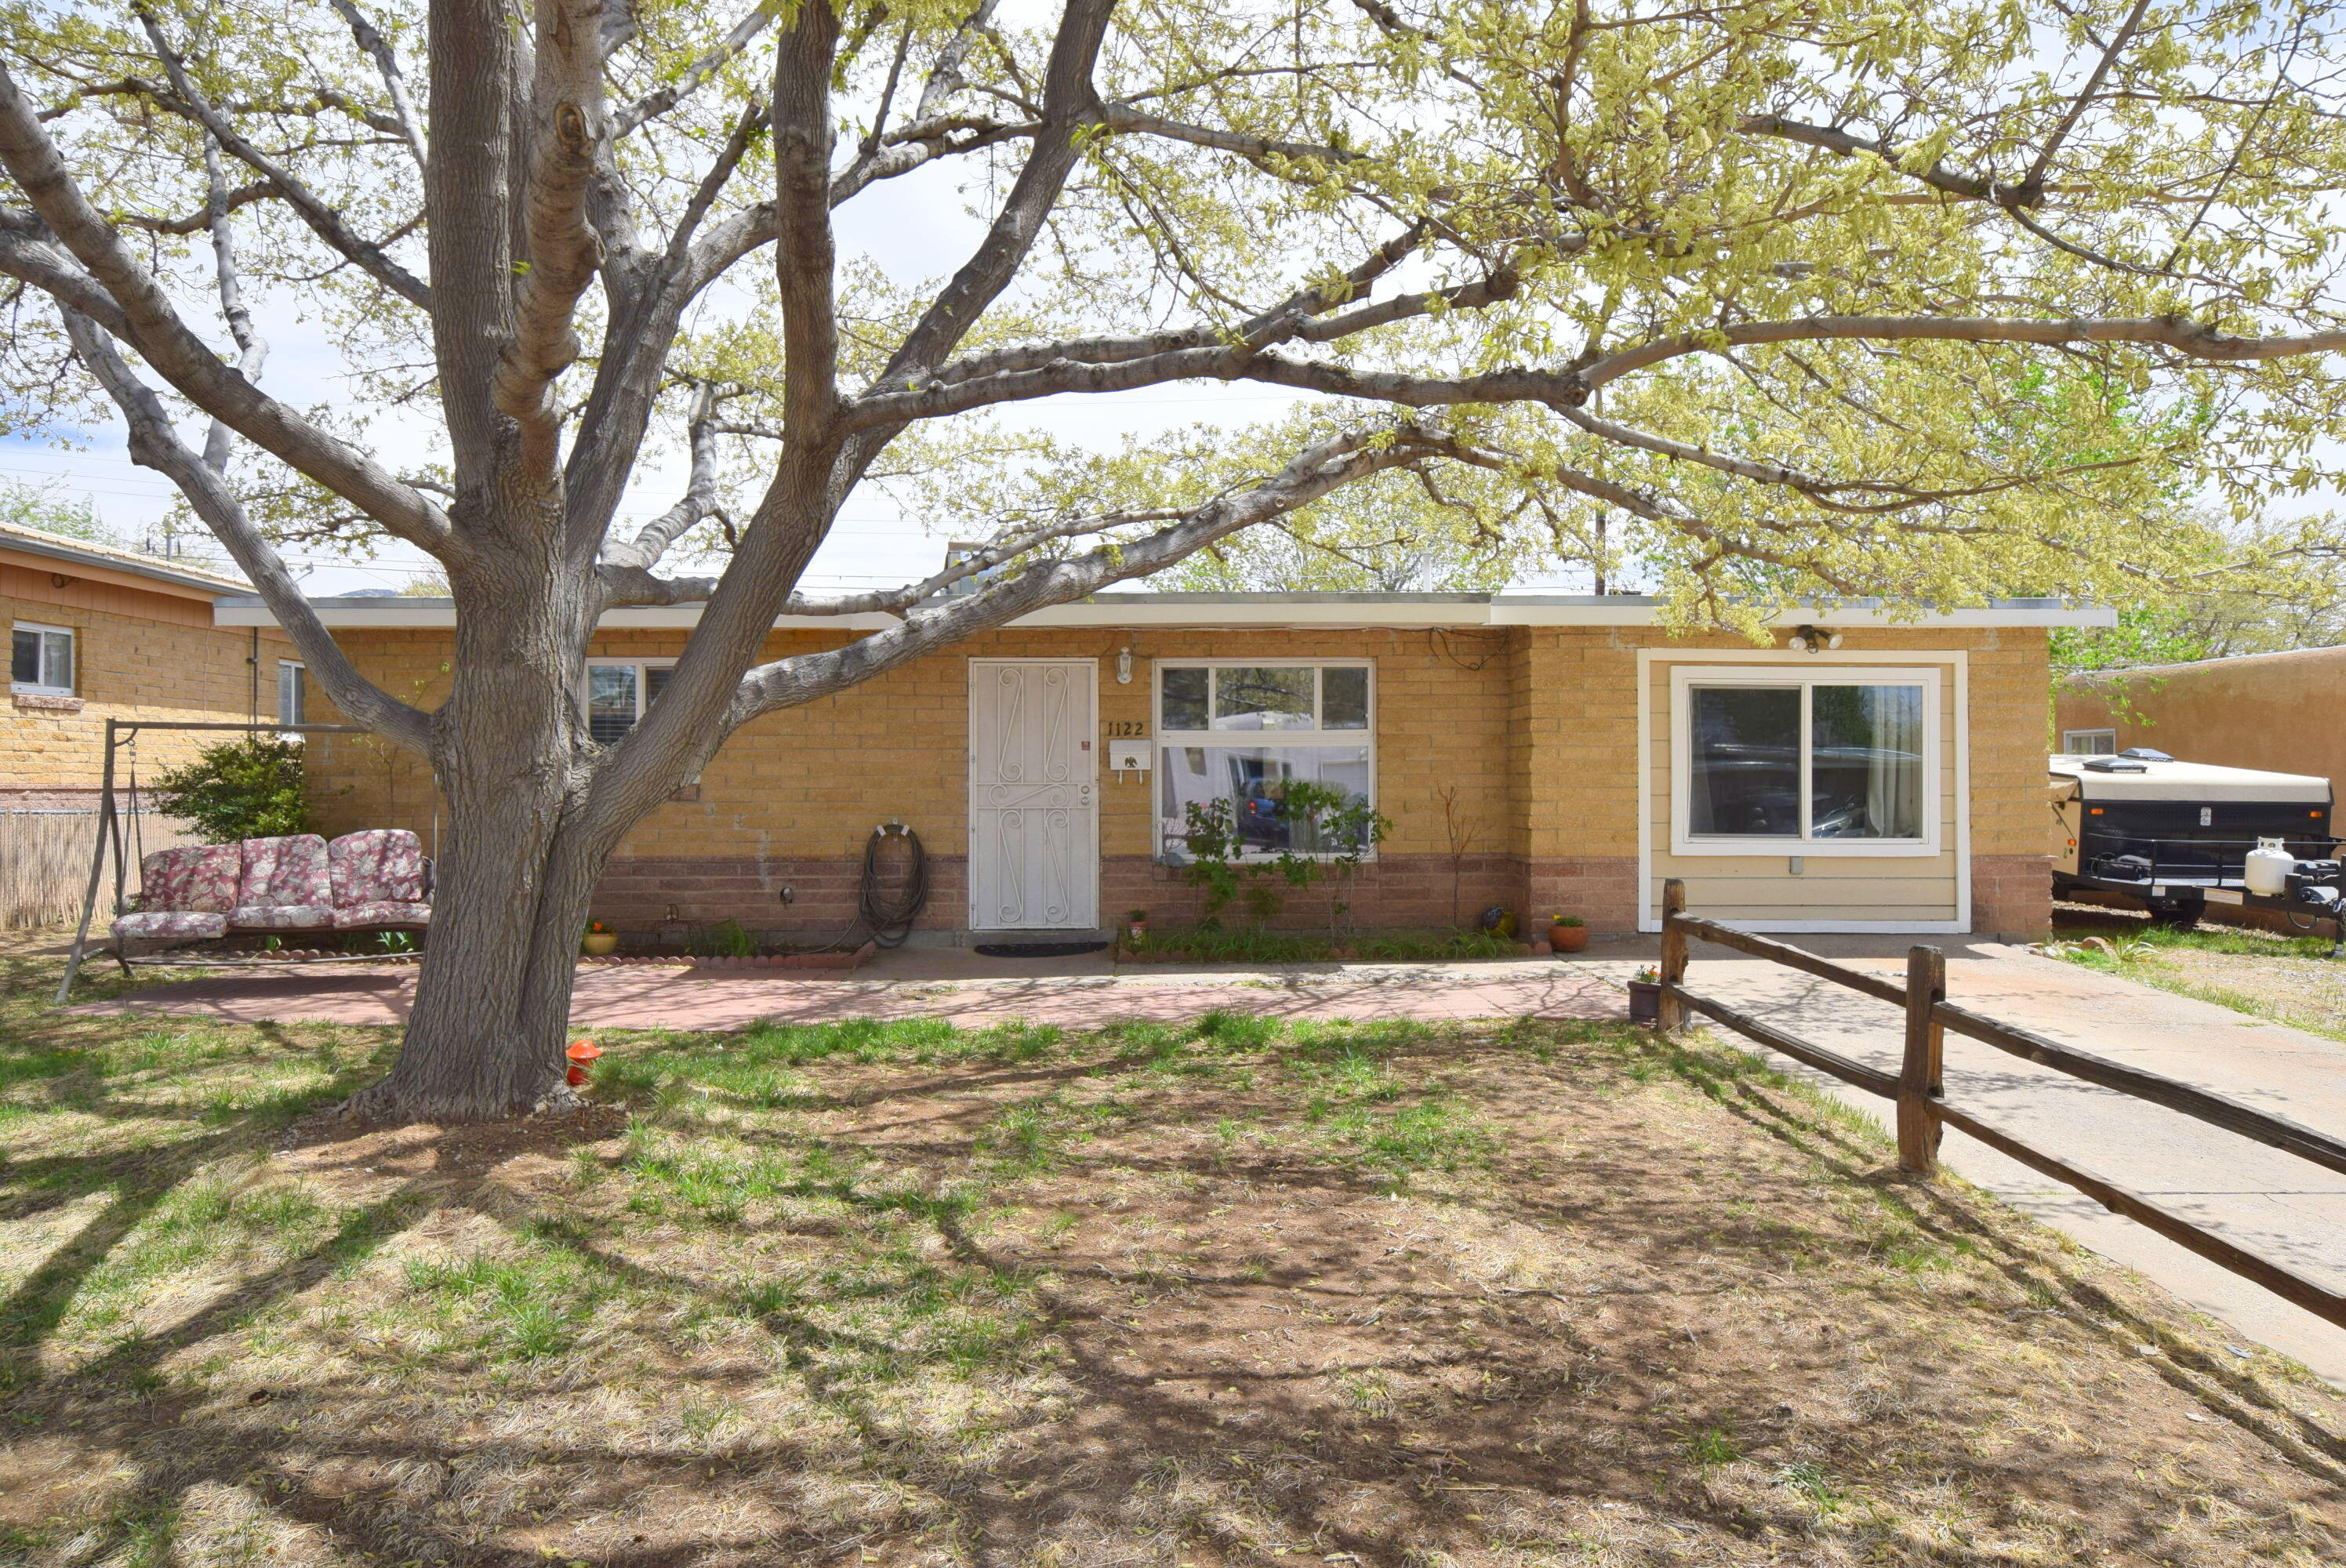 Come and see this cute house in the northeast heights.  Home has been well cared for and is ready for a new owner! 2 bedrooms with a possible 3rd or another living area.  Great walled backyard with plenty of storage.  Oversized utility room with washer and dryers to stay.  Great curb appeal.  This home will not disappoint!